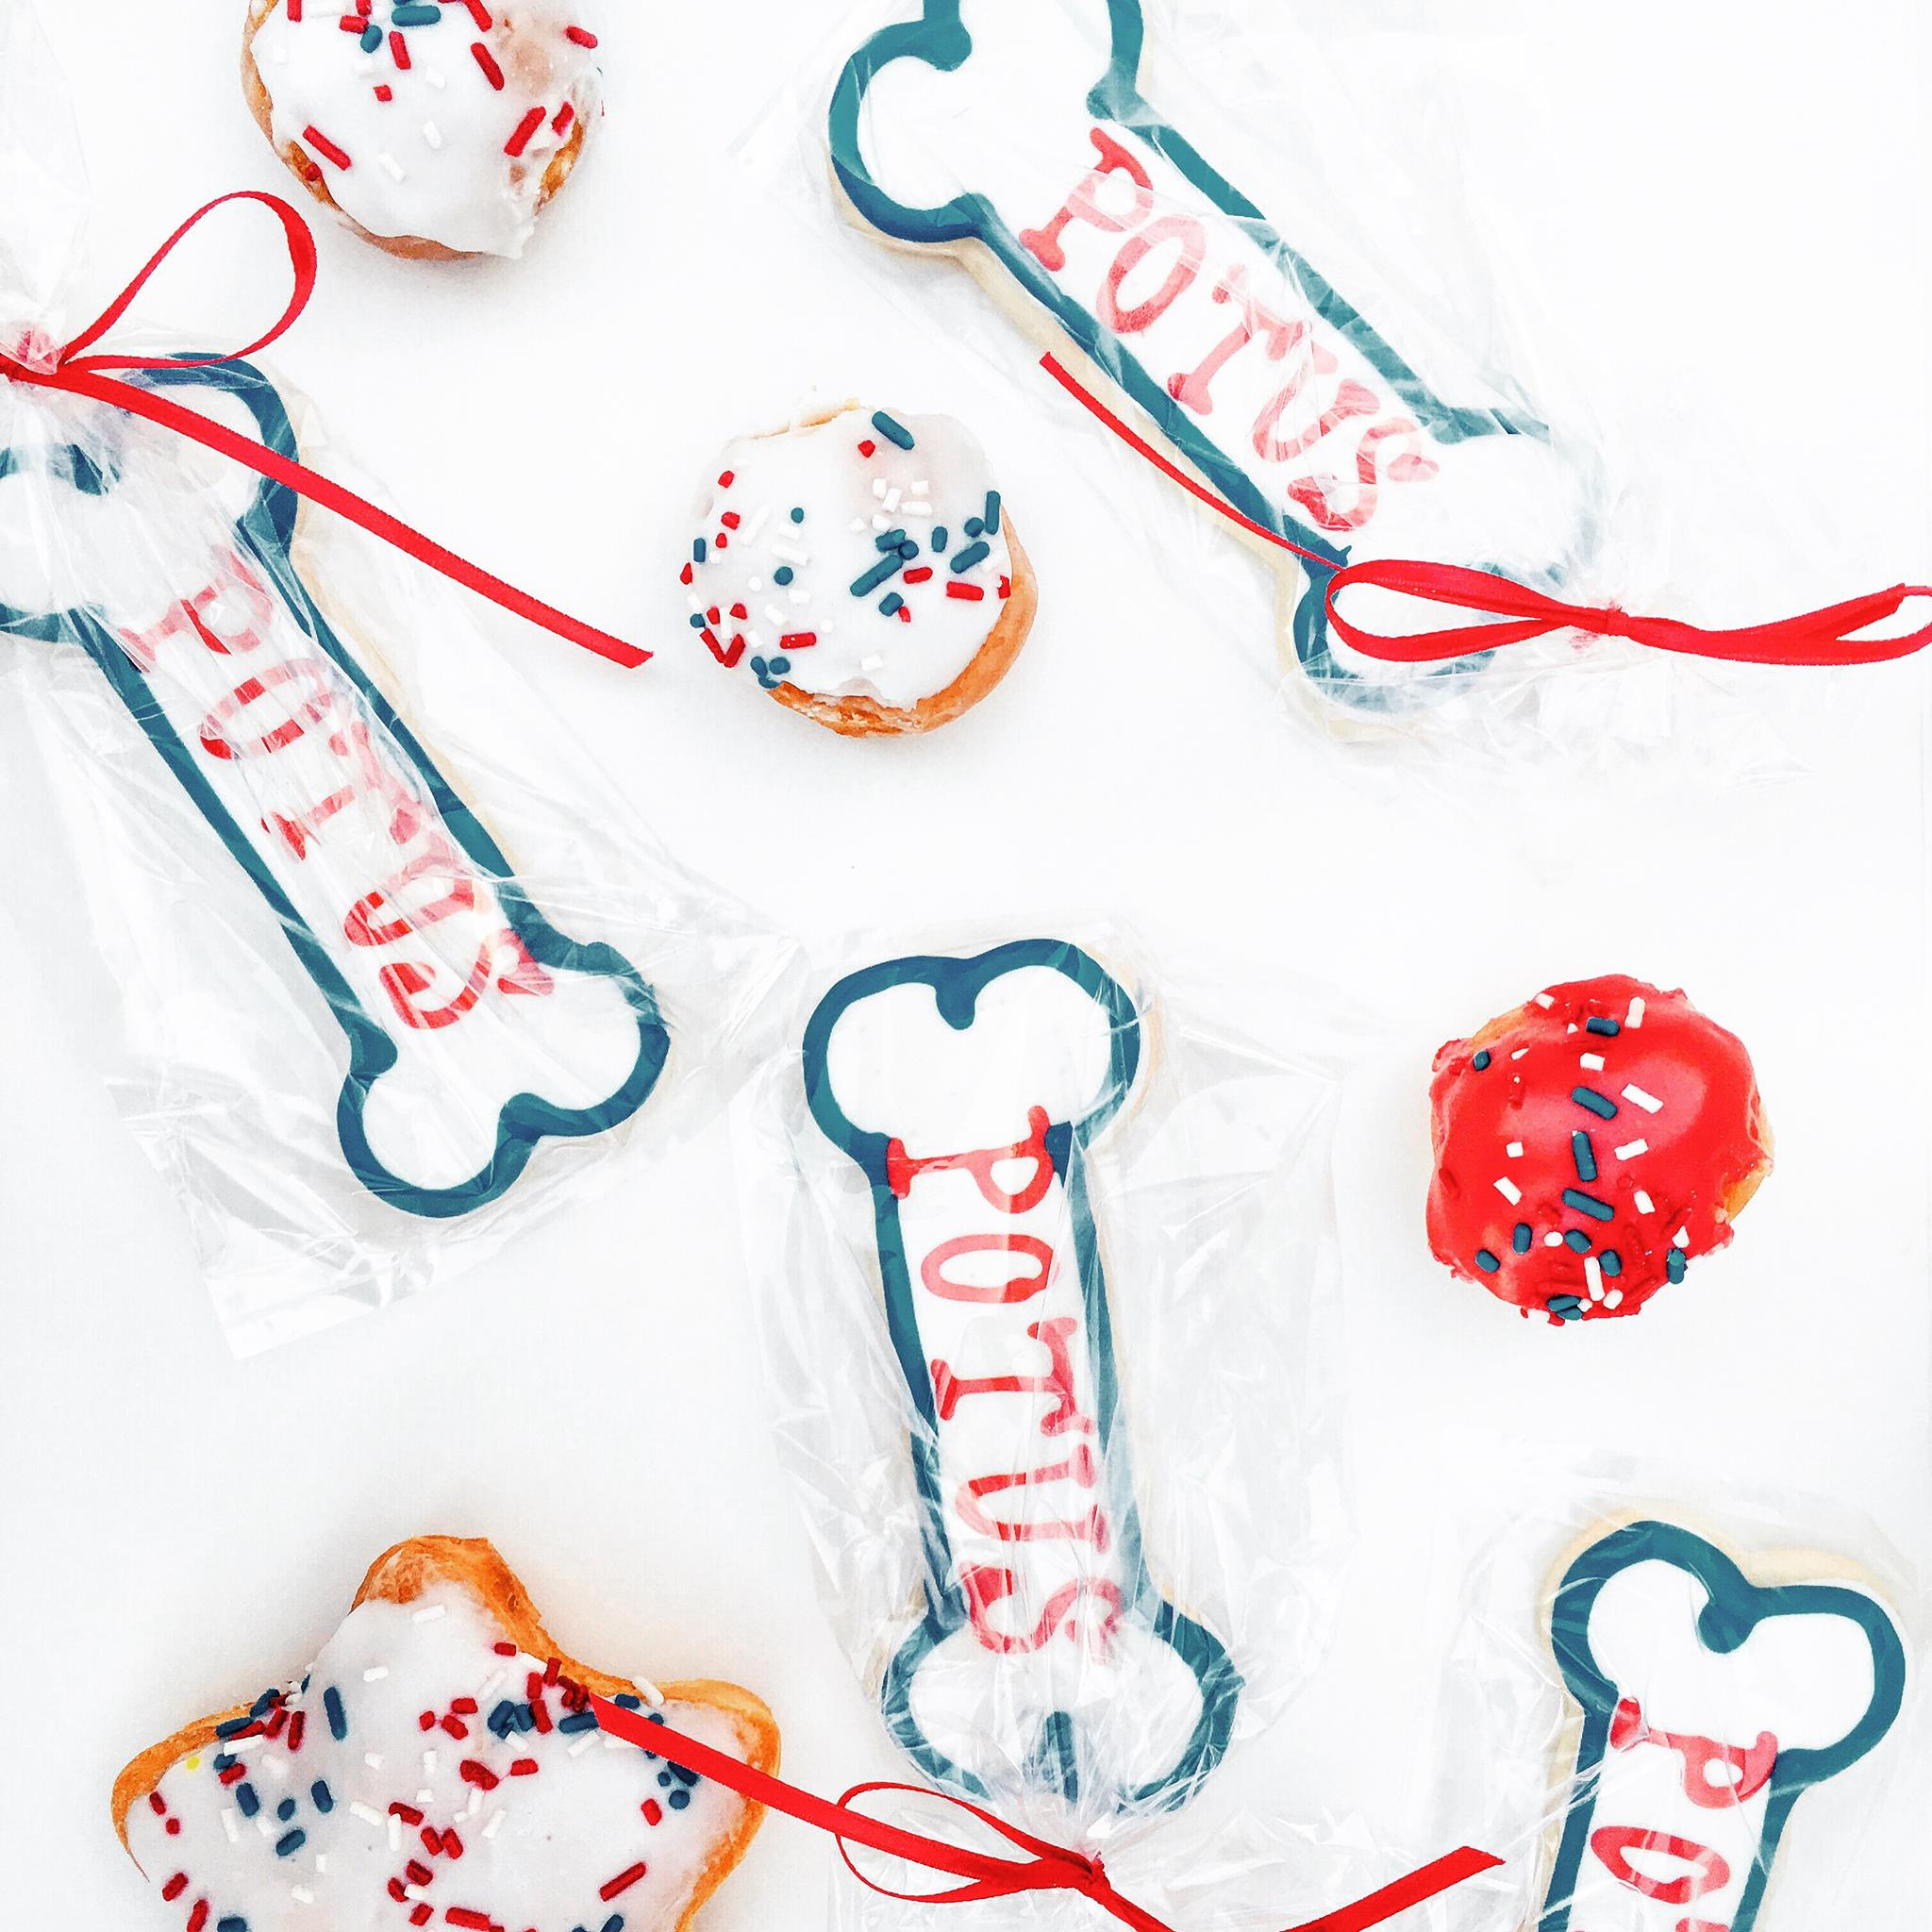 Election party ideas? It would be fun to vote for a class or family pet with these cute cookies! Photo by  Heather Patterson